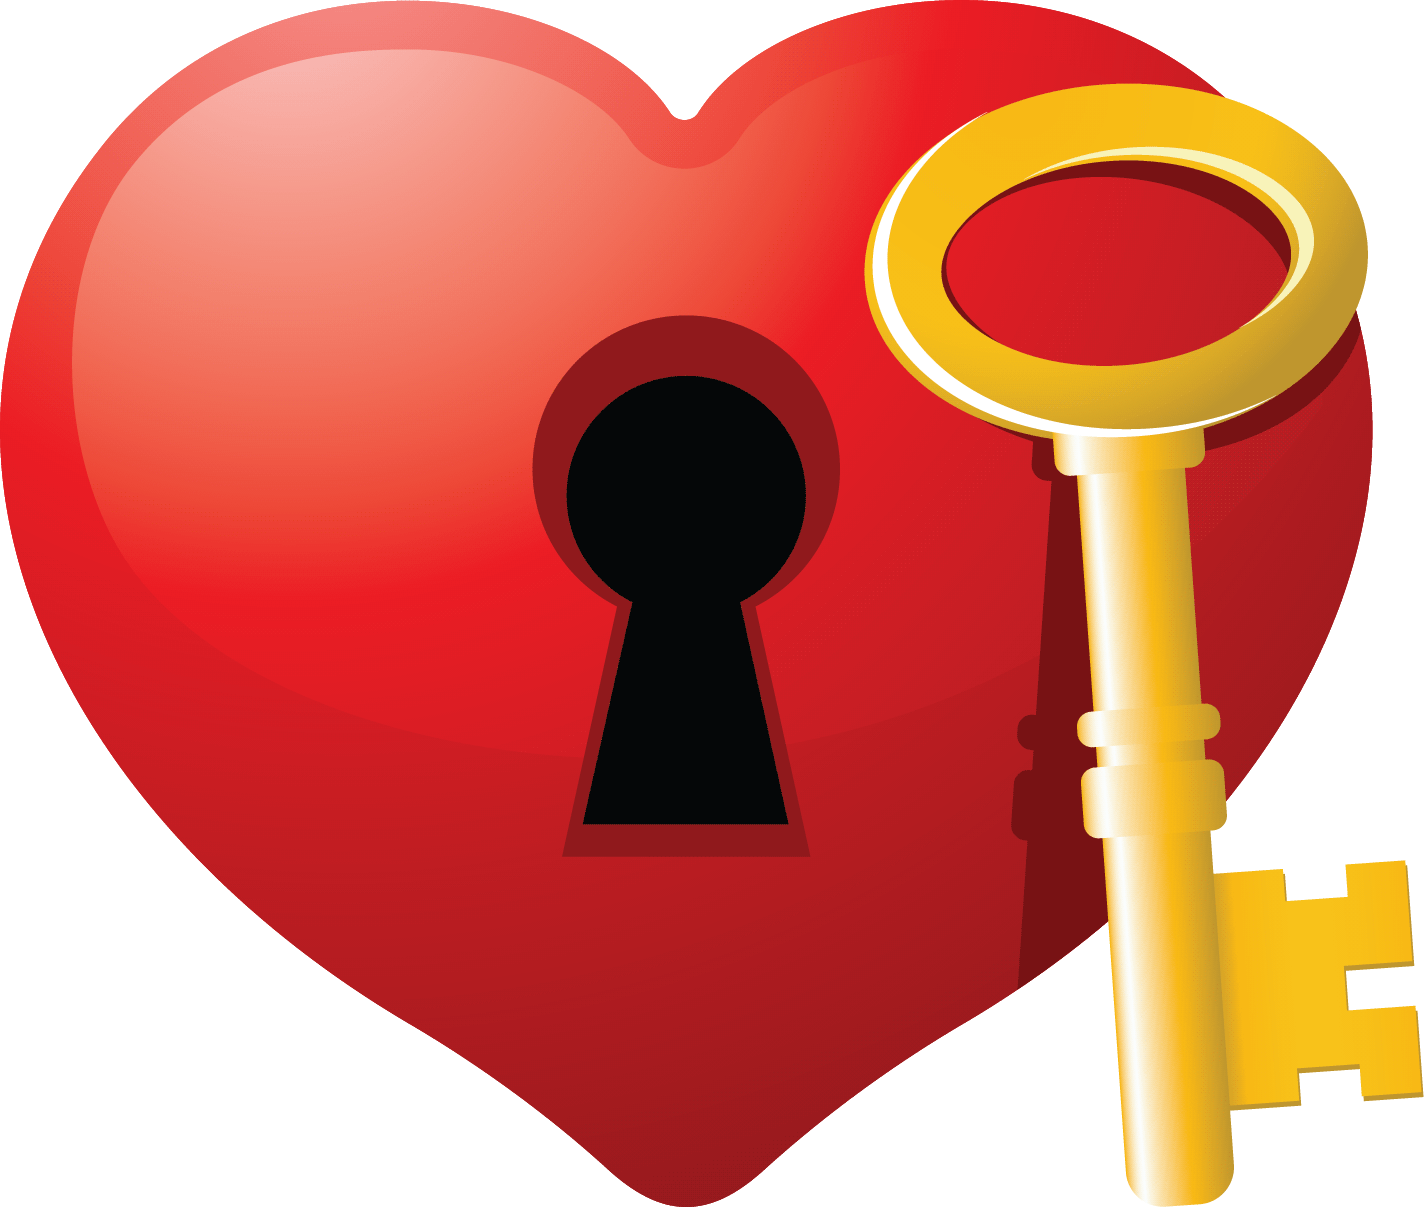 Broken Heart Cliparts Icon Broken Heart Clip Art Clipart Best ...